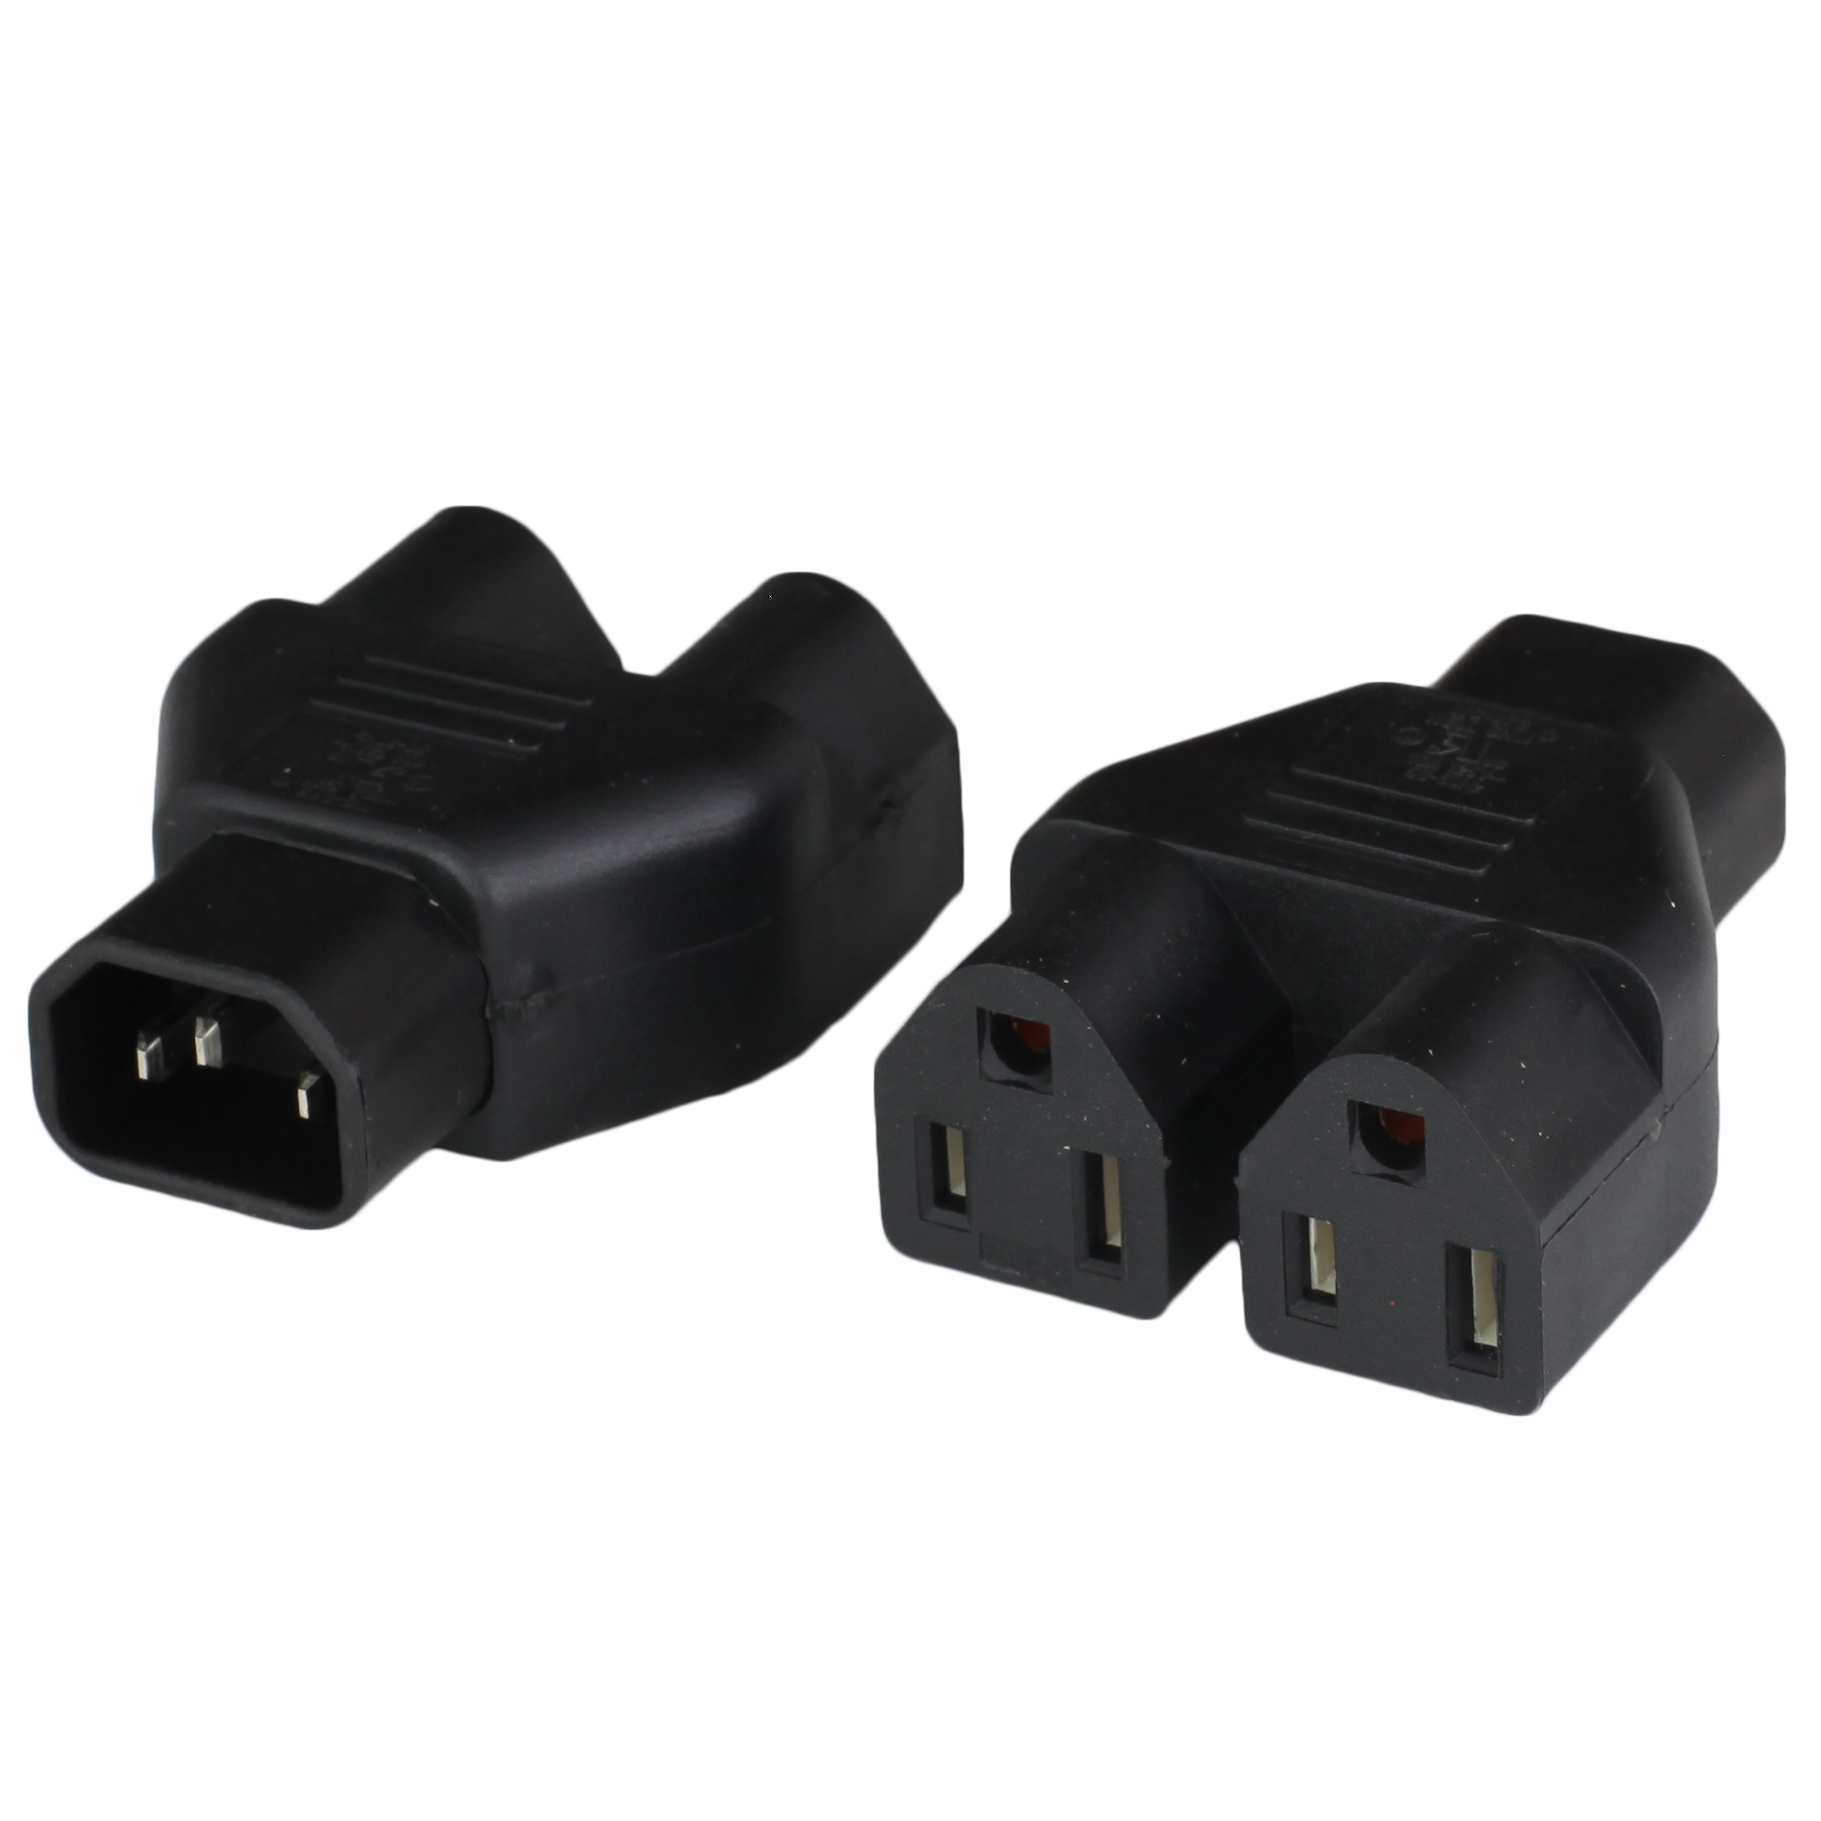 <p>This IEC 60320 C14 Plug Adapter (Adaptor) allows you to convert an IEC 60320 C13 connector/outlet into two NEMA 5-15R outlets.</p>